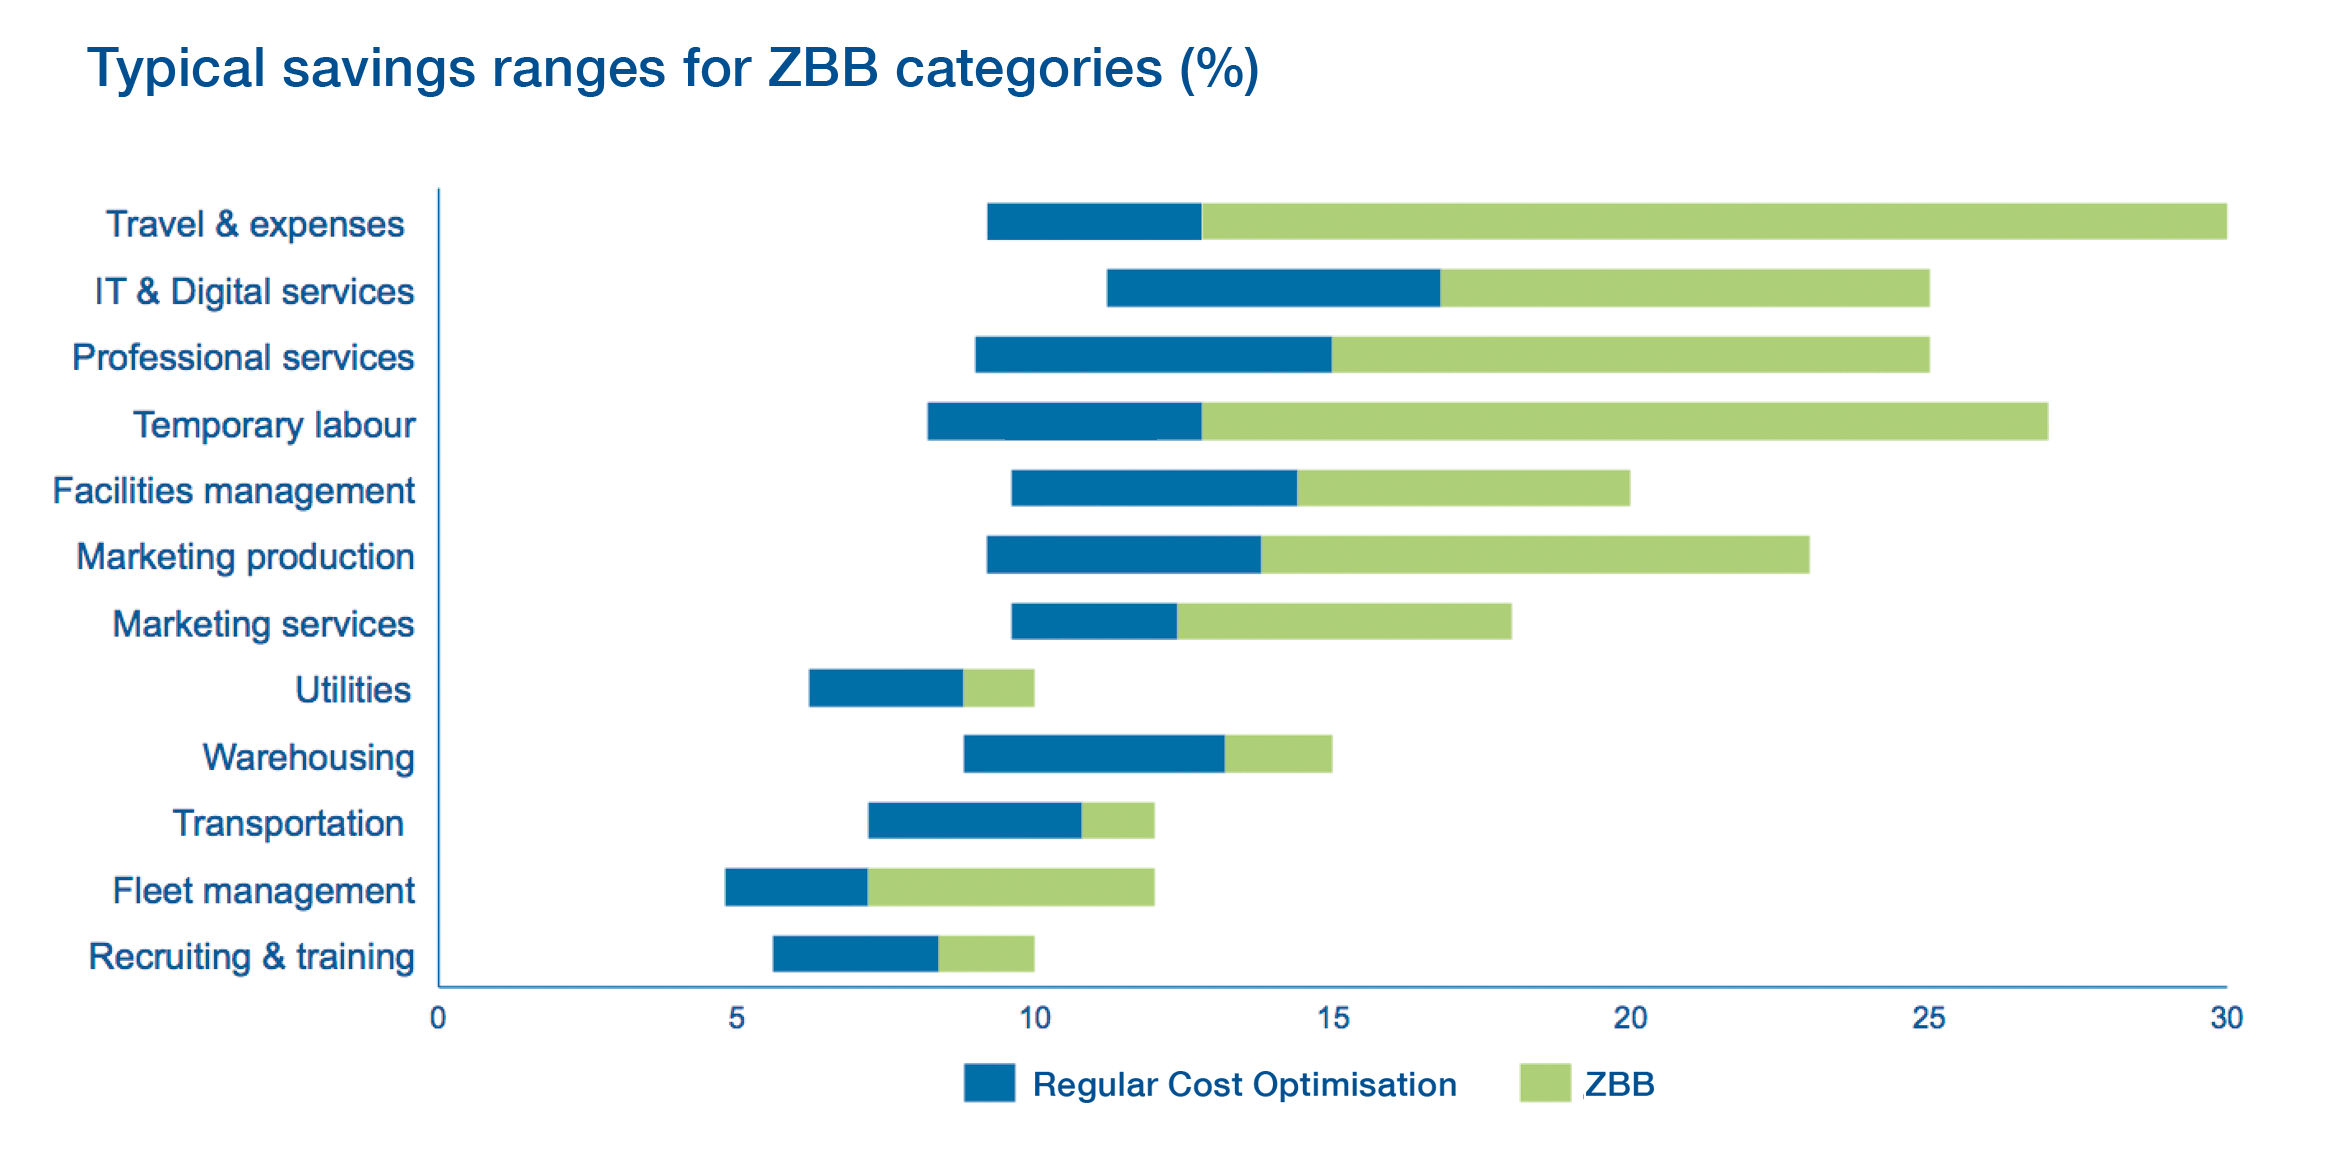 Chart: Typical savings ranges for ZBB categoires in perecent